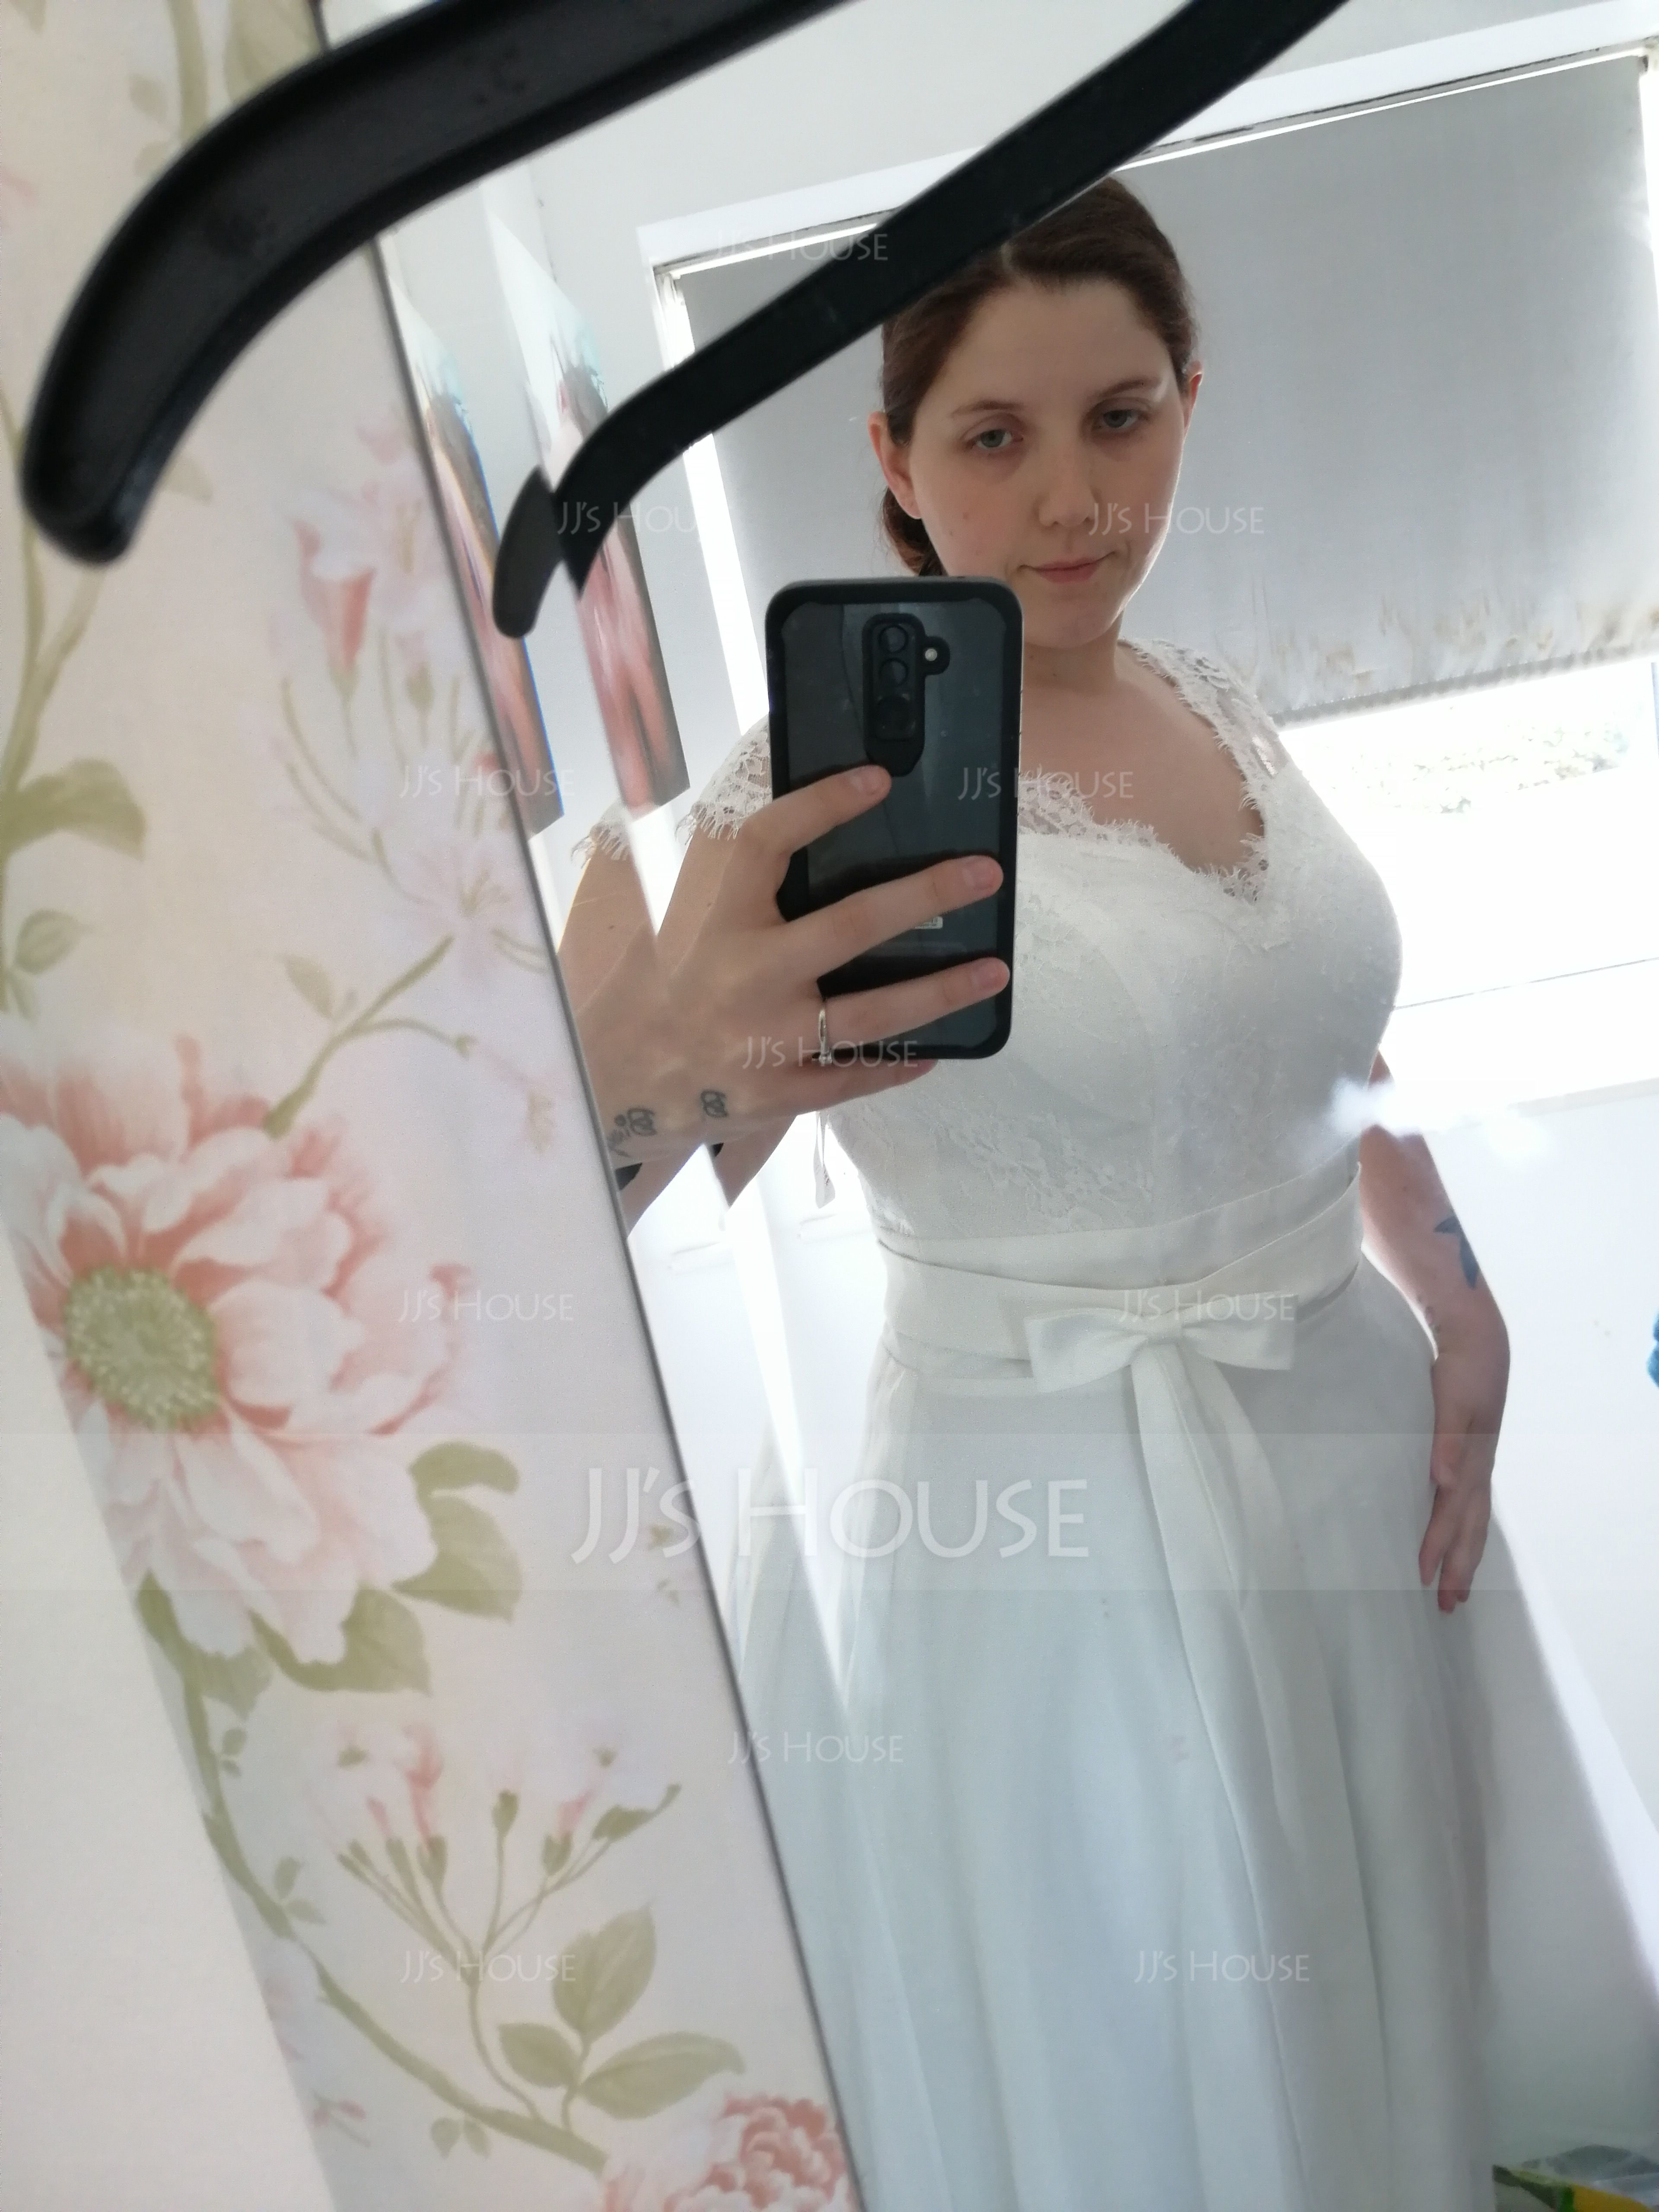 A-Line V-neck Tea-Length Satin Wedding Dress With Bow(s) (002145320)